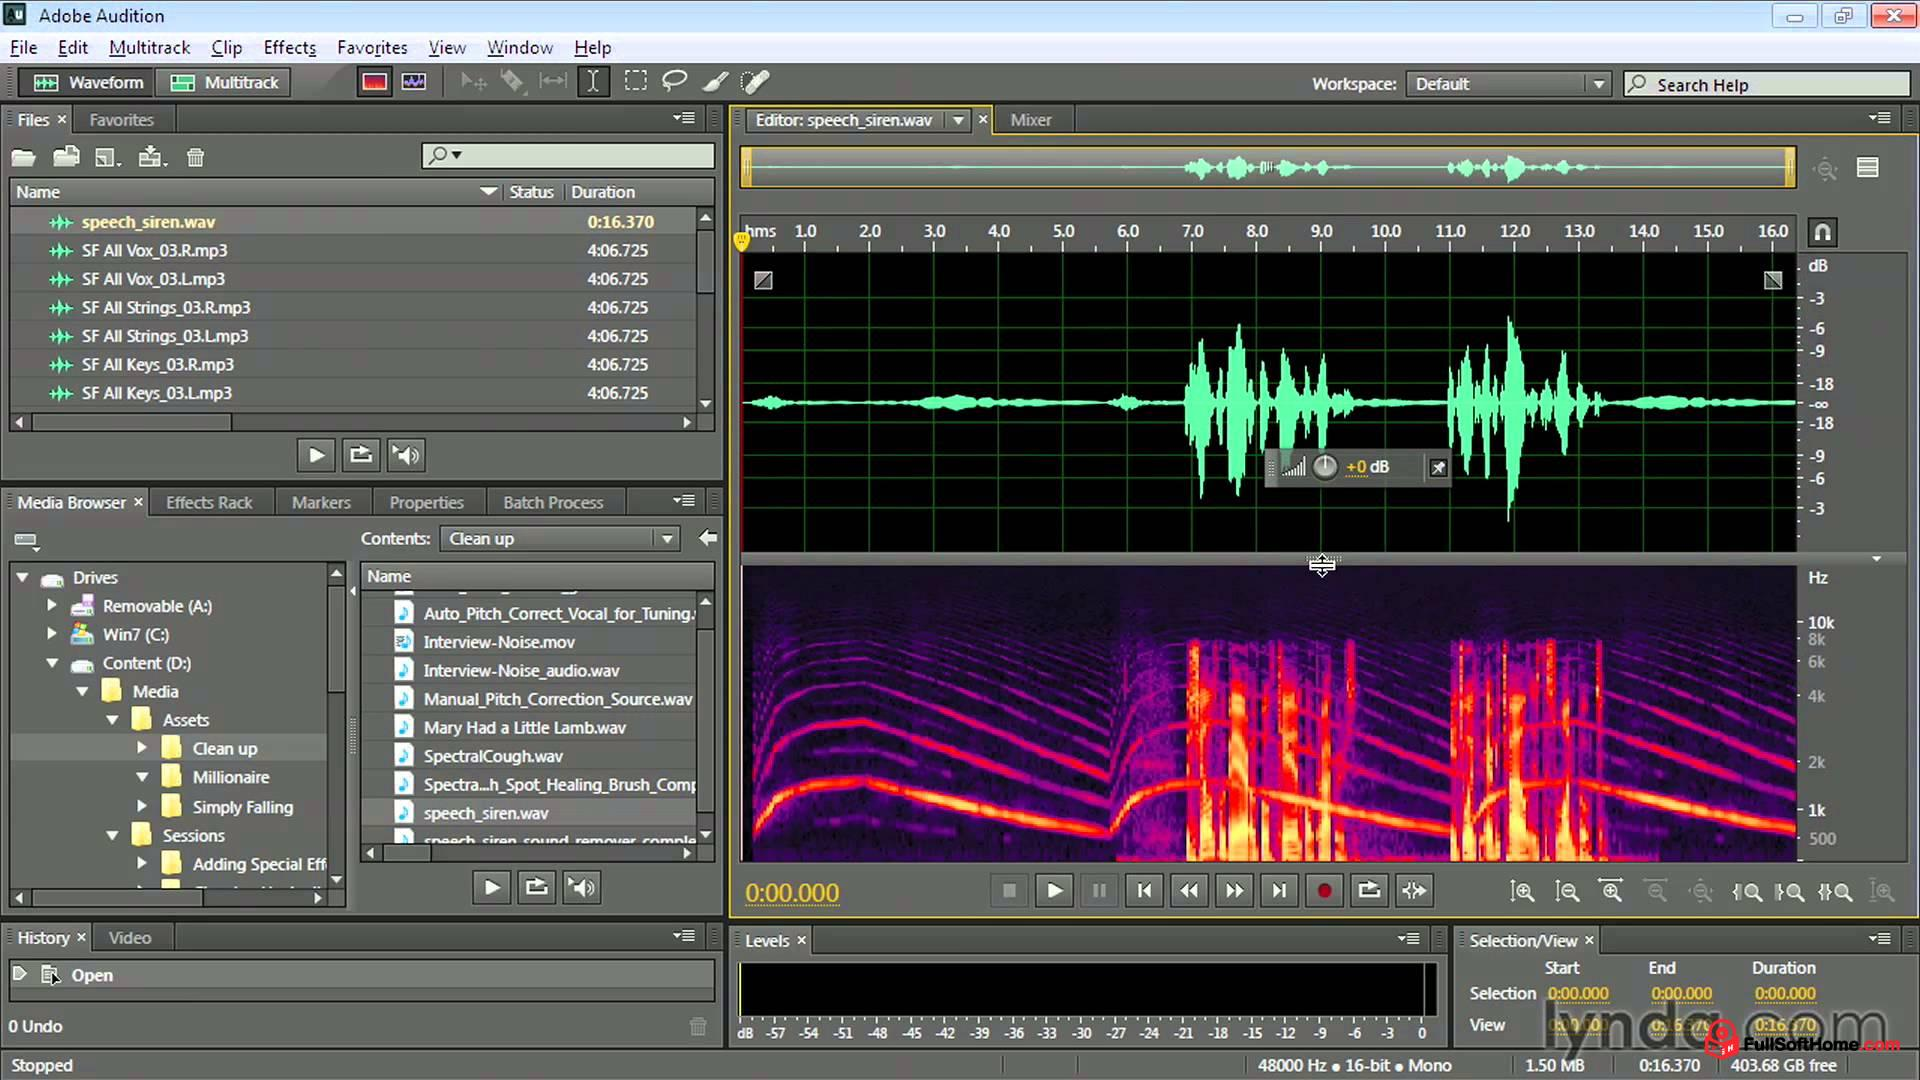 adobe audition full crack